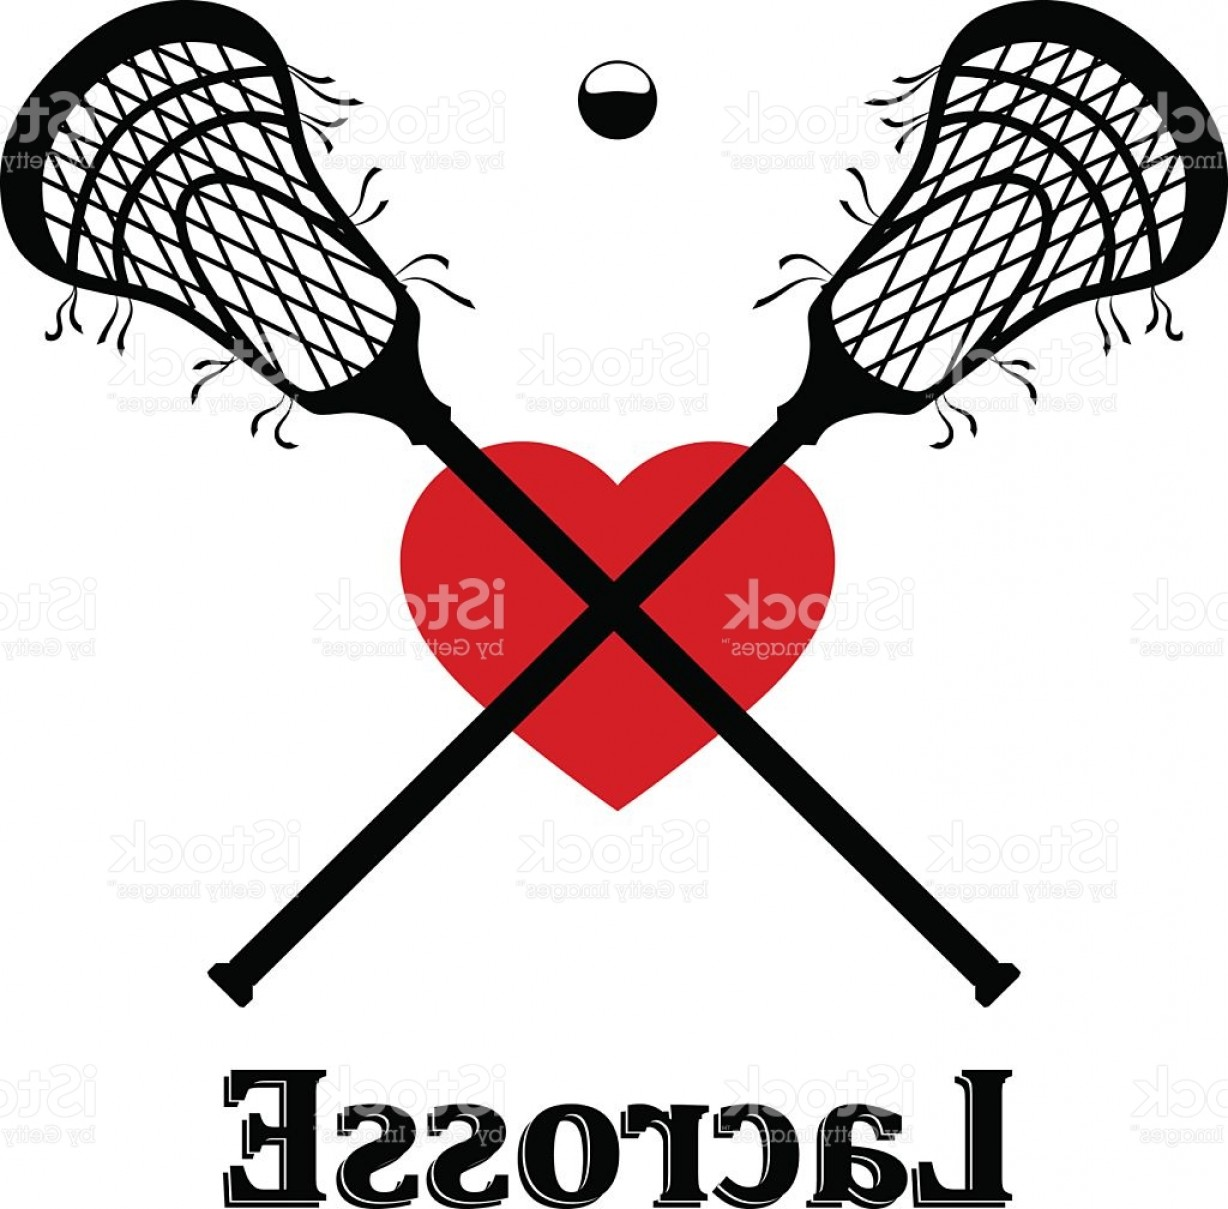 Lacrosse Stick Vector: Crossed Lacrosse Stick Ball And Heart Vector Illustration Gm